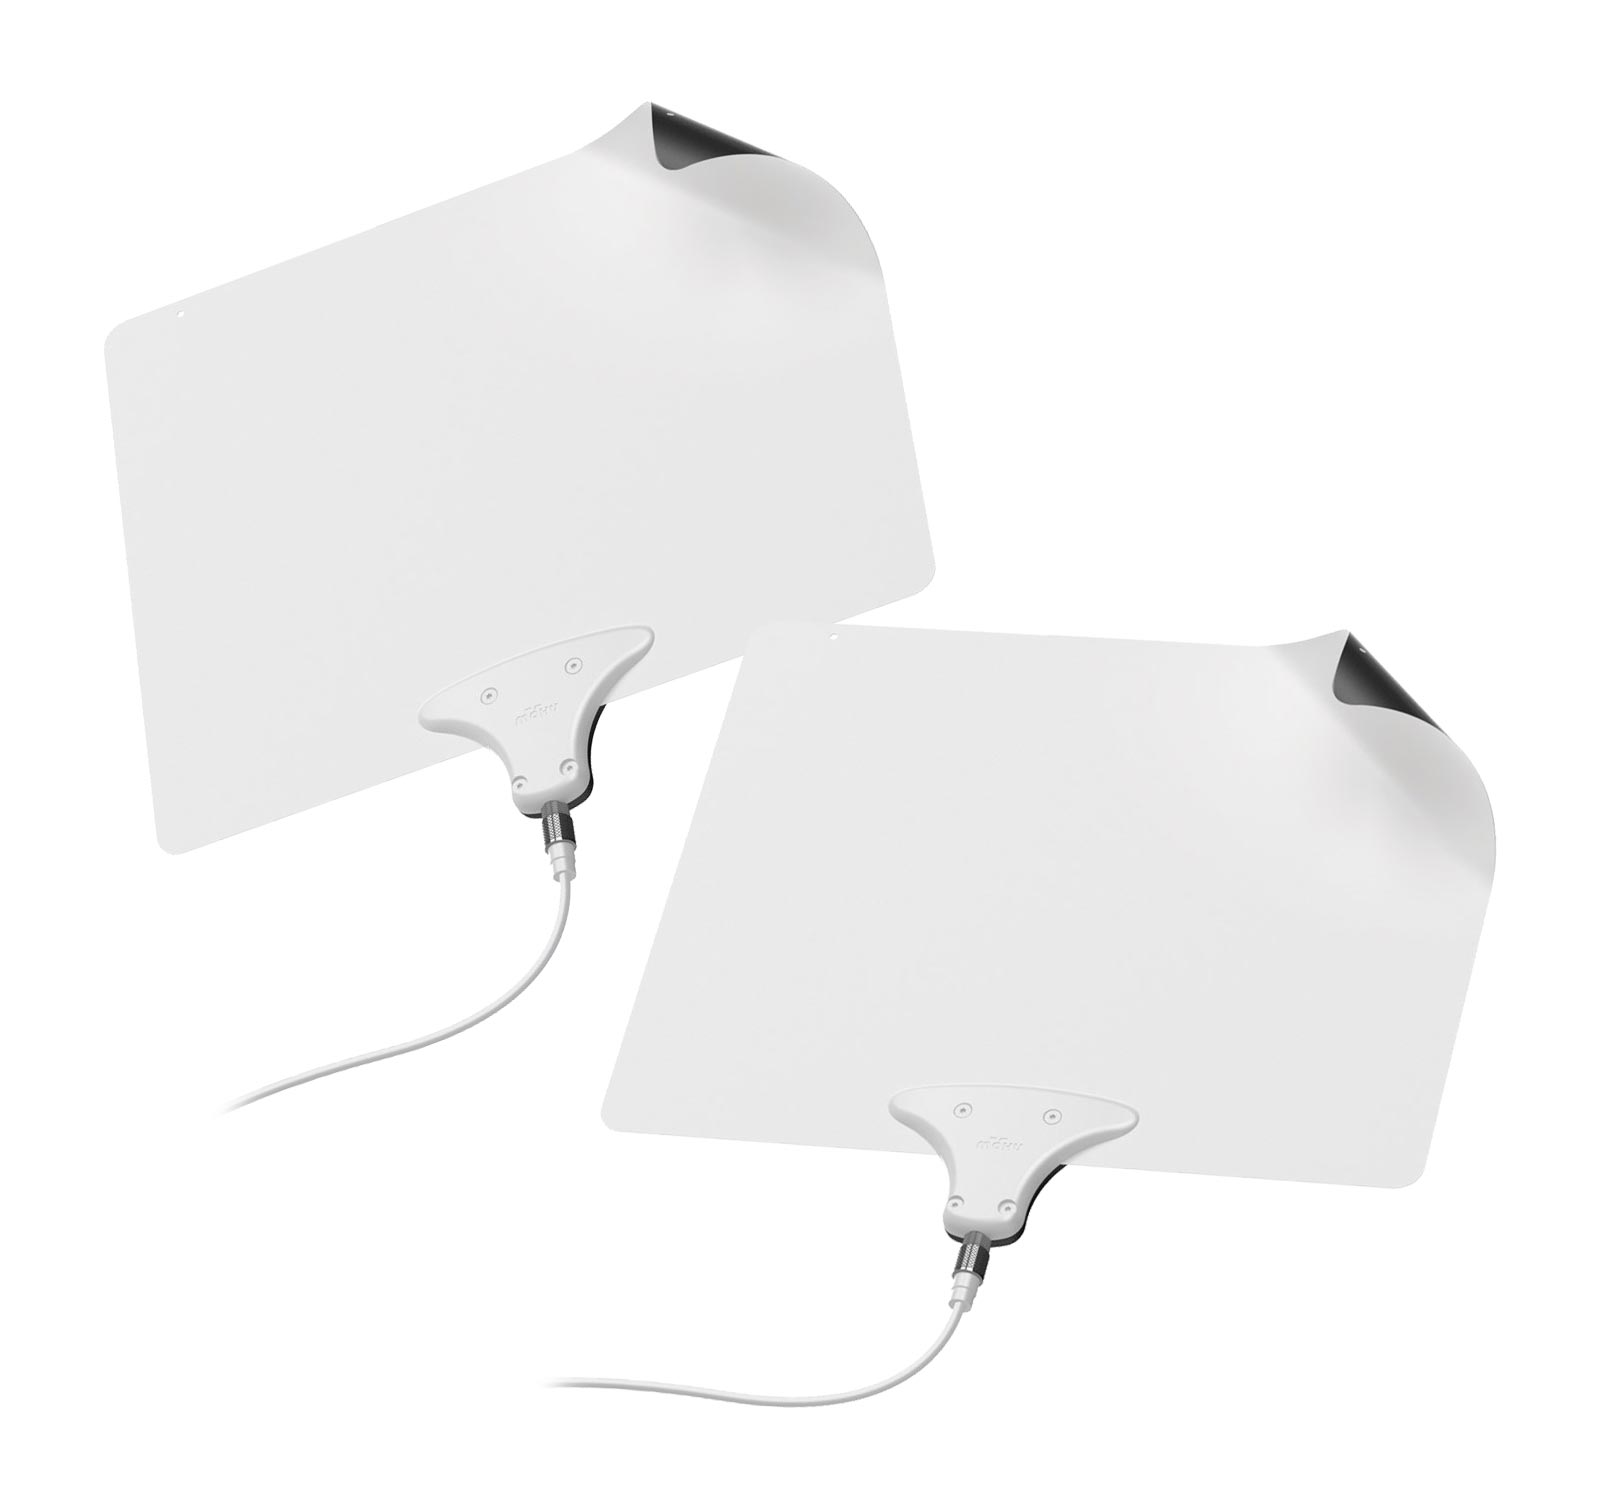 Mohu Leaf 50 Amplified Indoor HDTV Antenna (2-pack)